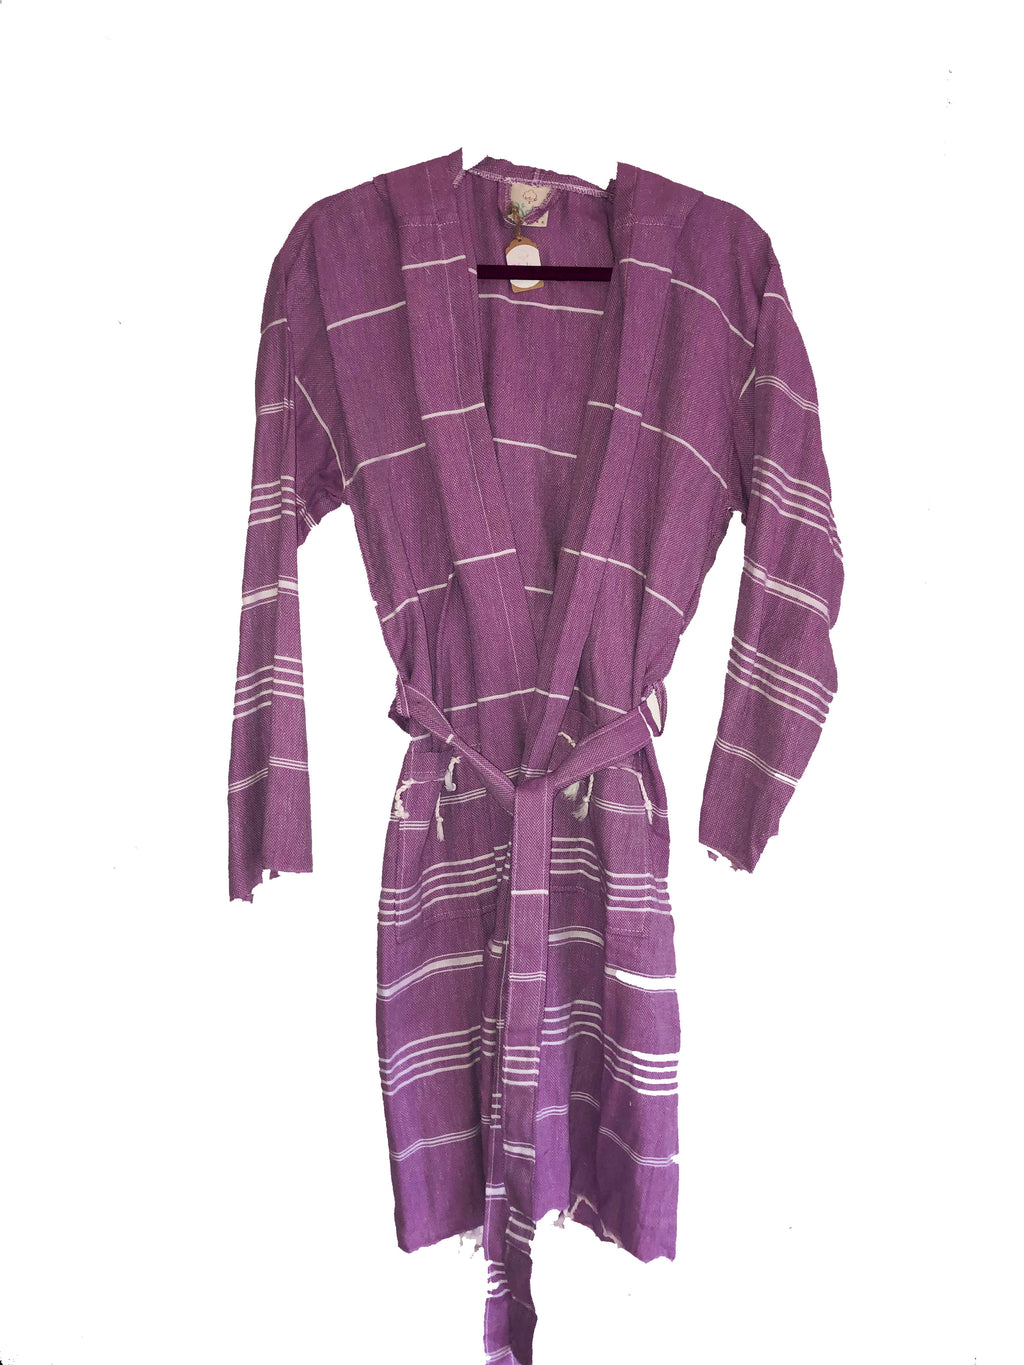 koton kulture sultans palace lavender white stripped peshtemal bathrobe belt pockets white tassels on sleeves bottom toronto turkey cotton organic hammam spa